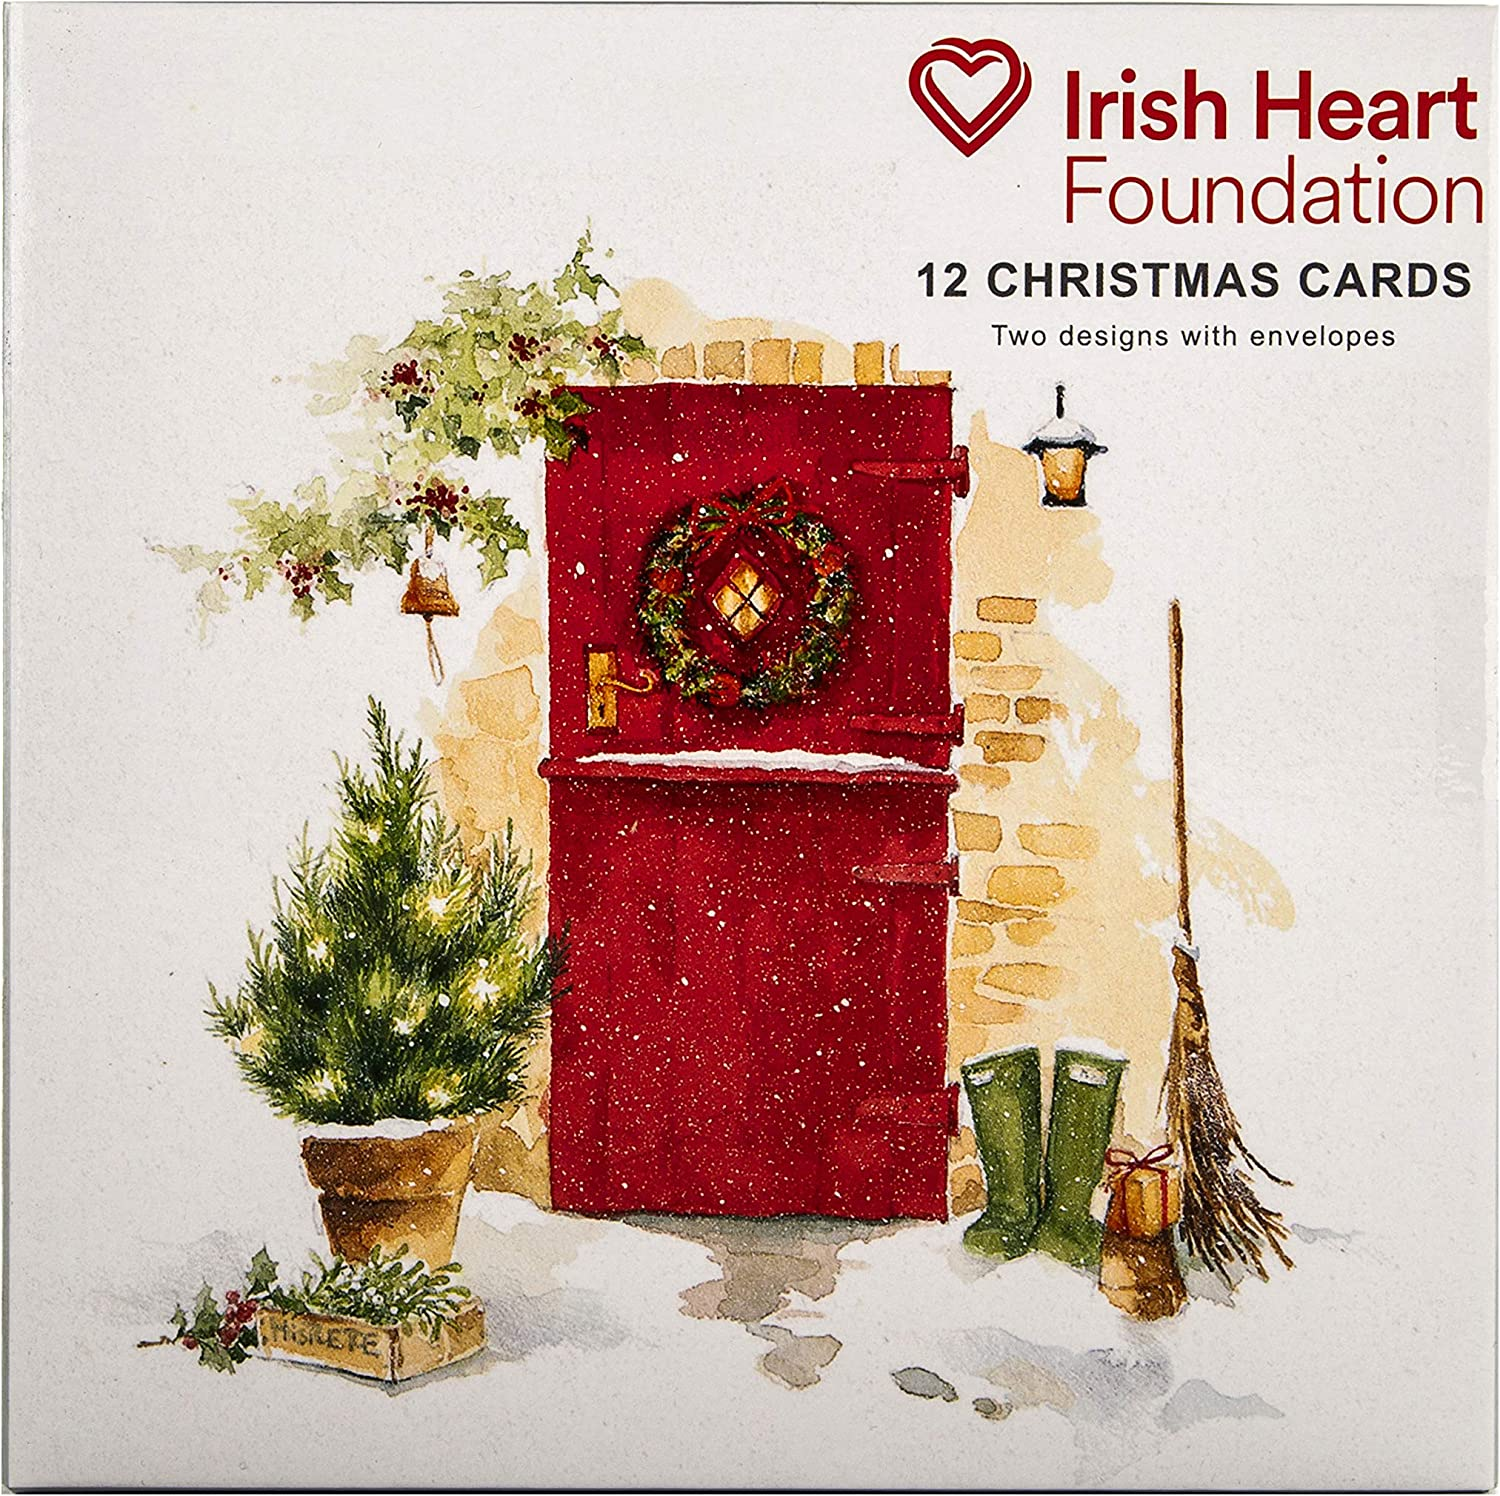 Festive Home Boxed Charity Christmas Cards from Hallmark 12 Cards in 2 Classic Designs